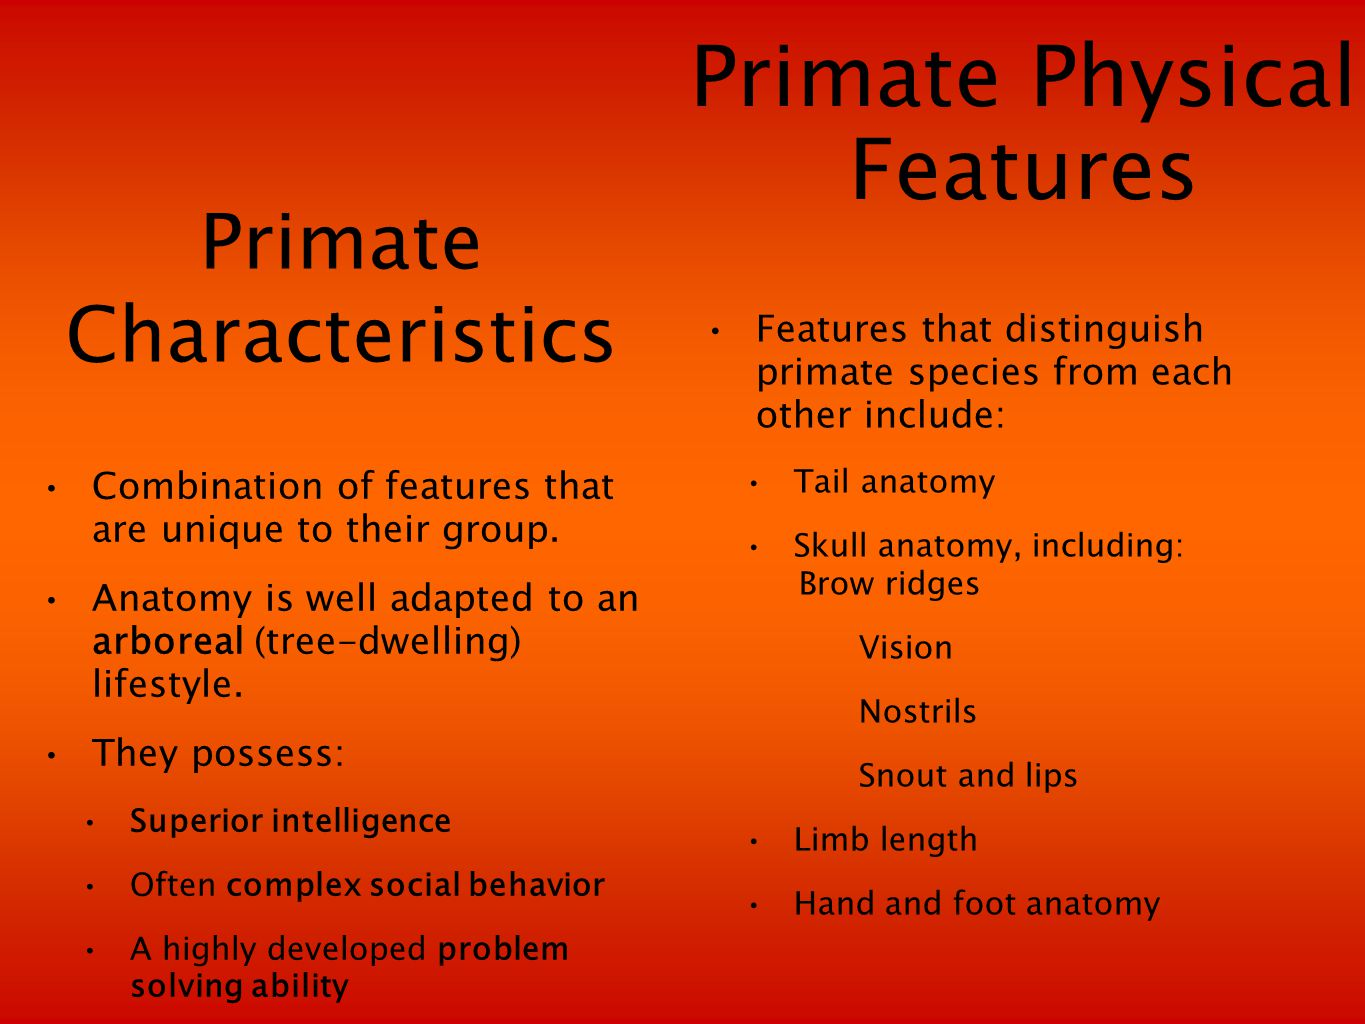 Primate Characteristics Combination of features that are unique to their group.